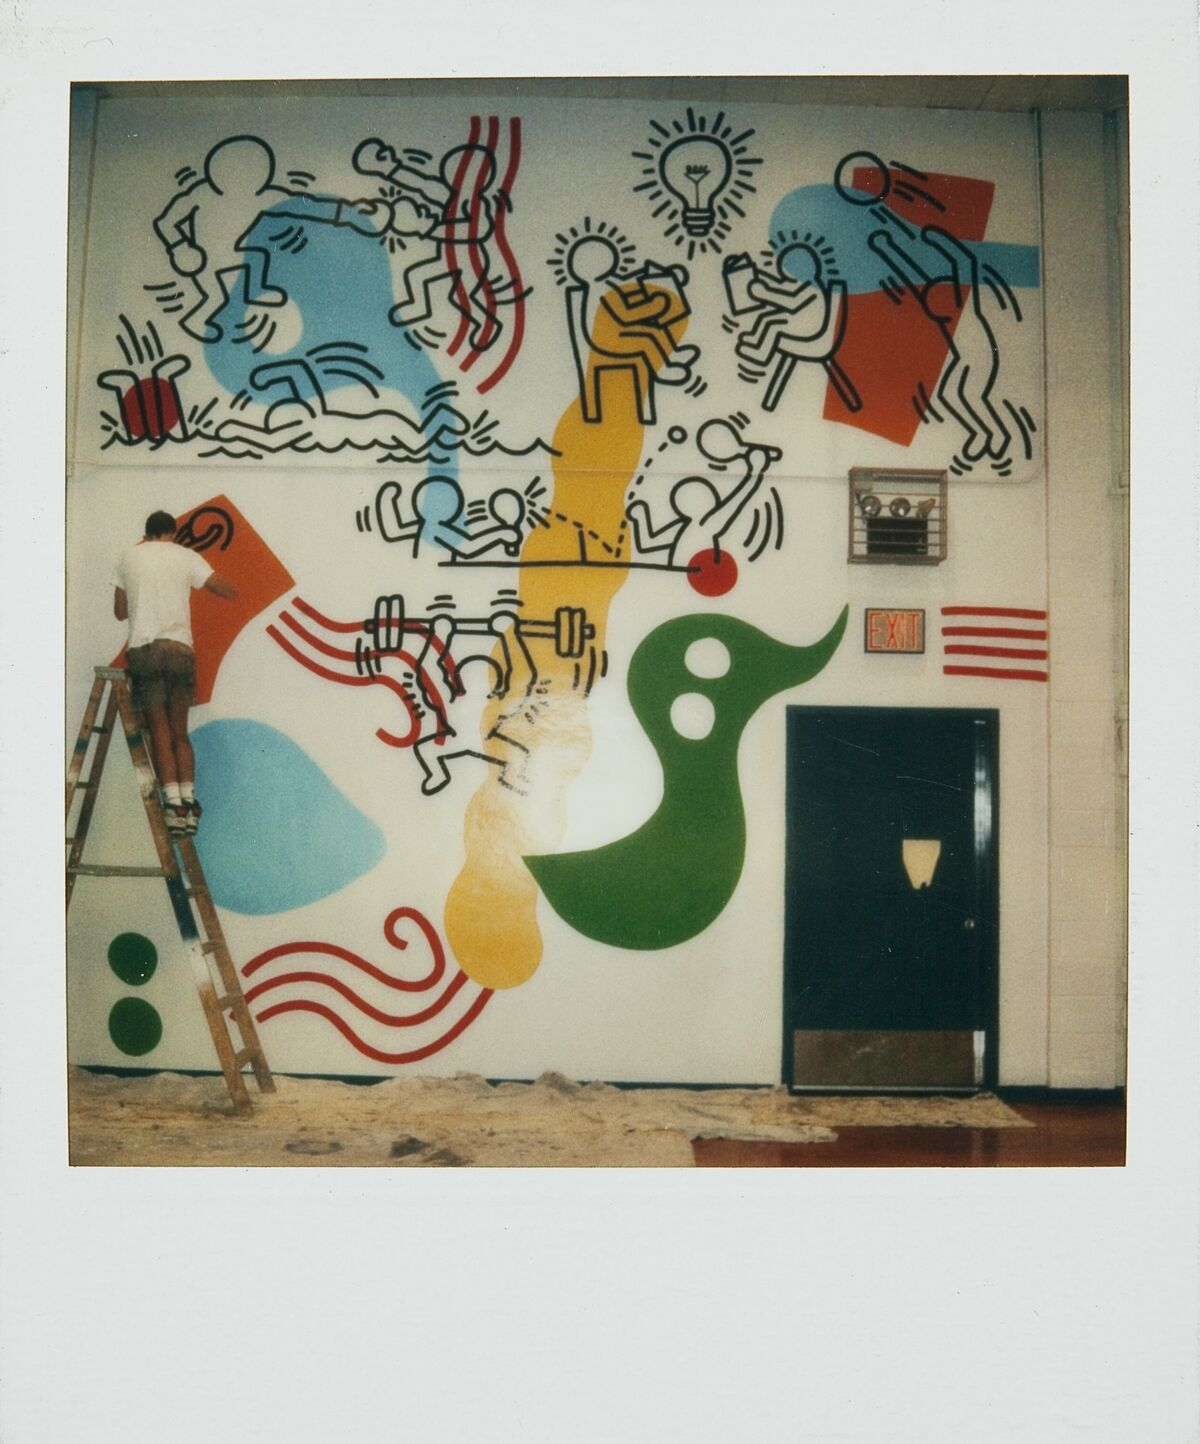 Polaroid of Keith Haring working on the Boy's Club Mural, Pitt Street, New York City, 1987. © Keith Haring Foundation. Courtesy of The Keith Haring Foundation Archives.